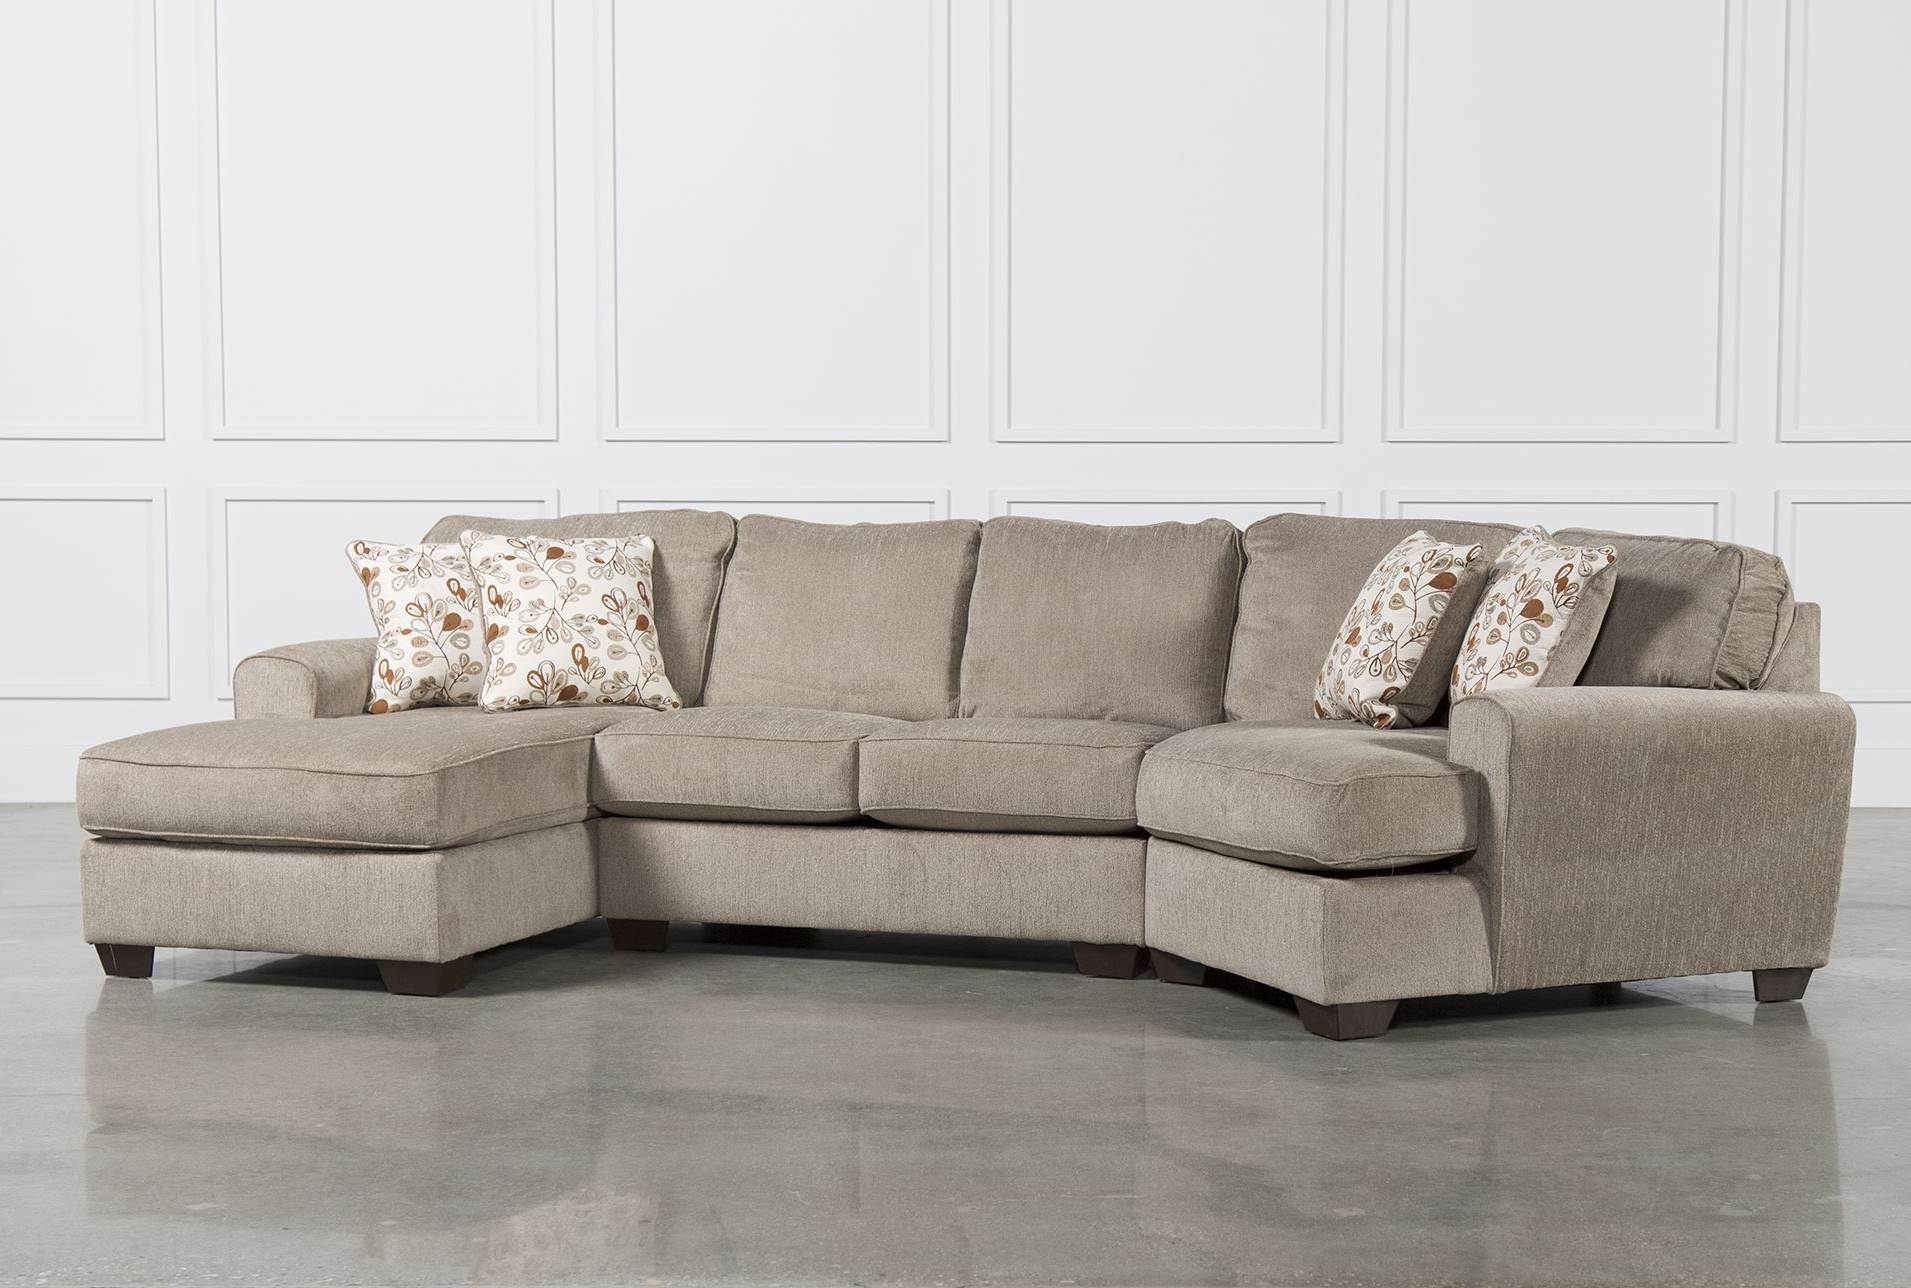 Home Furniture Decoration Within Most Recent Small Couches With Chaise (View 11 of 15)